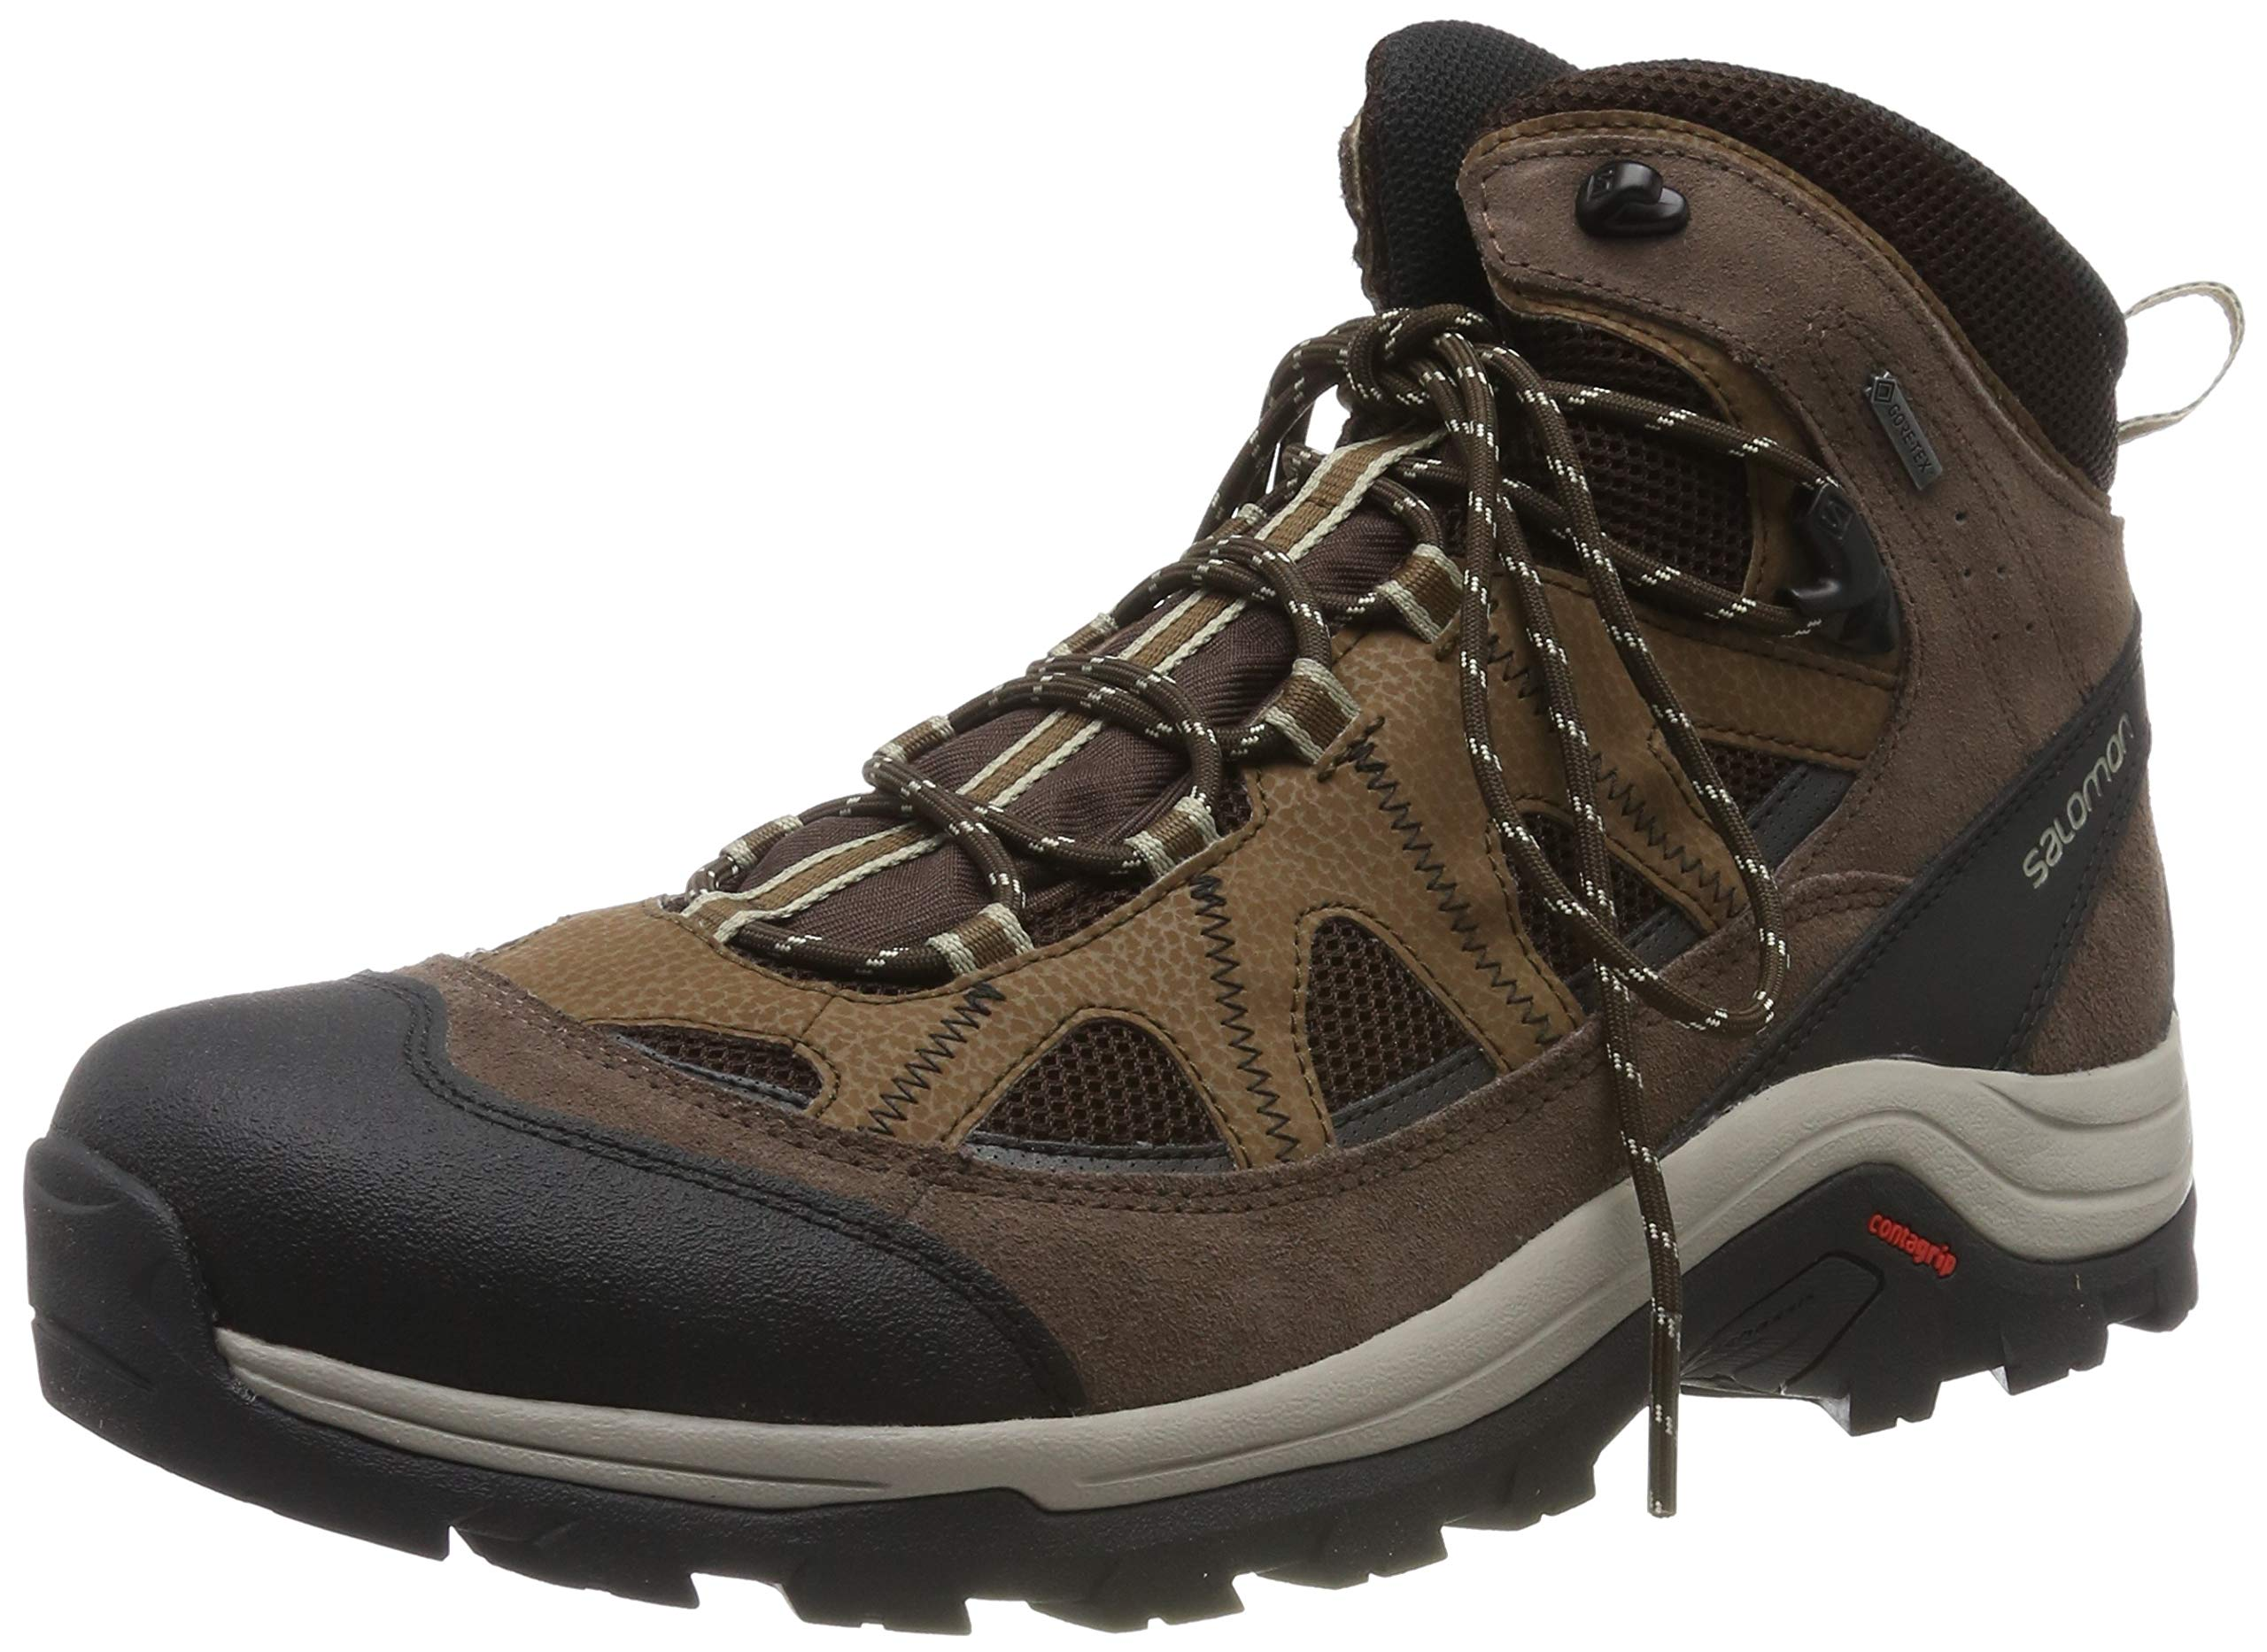 Us Authentic Men's Gtx Coffeechocolate M Backpacking Salomon Ltr Kaki10 Brownvintage BootBlack dCxeoB